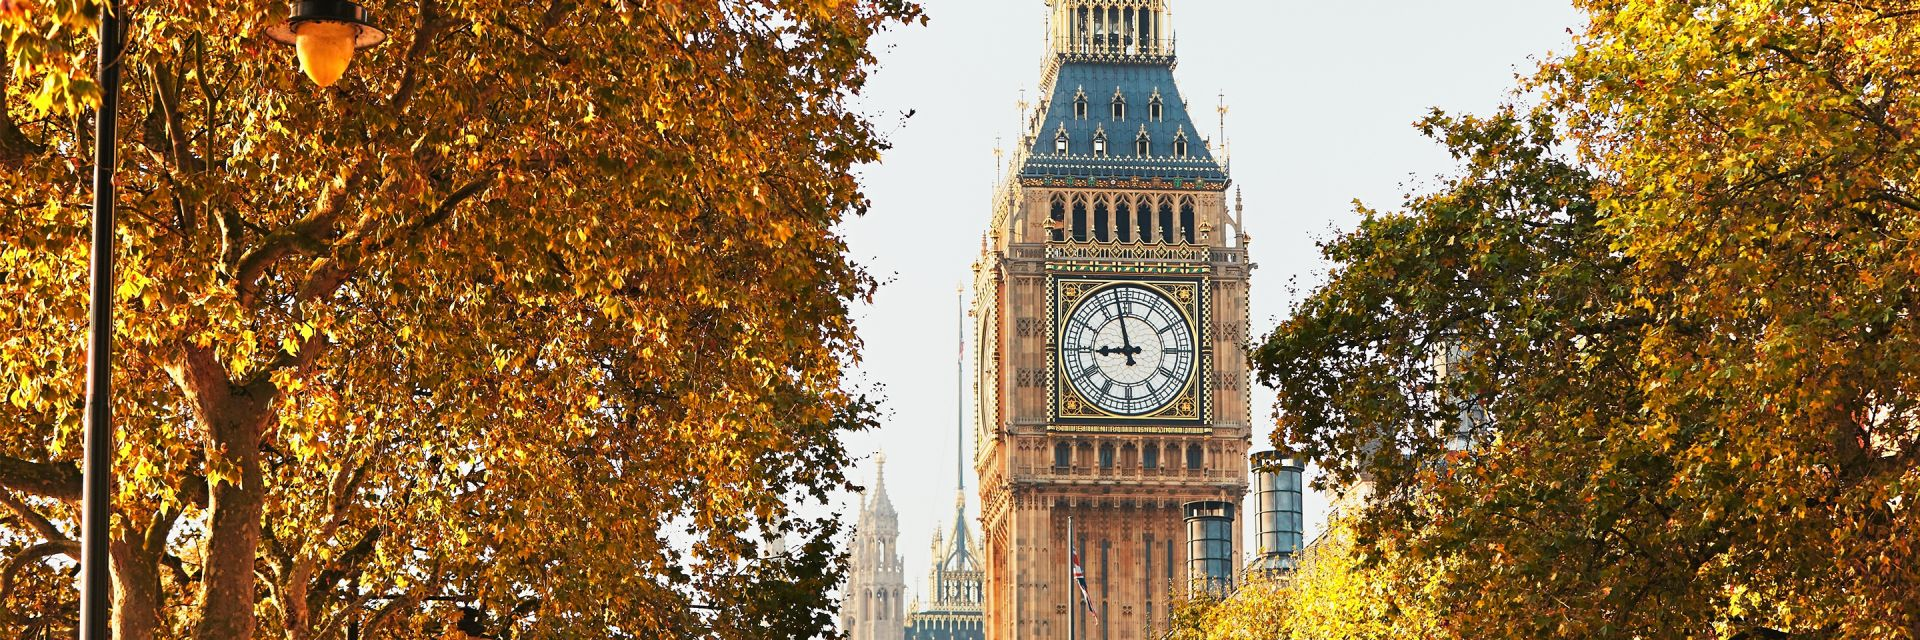 London's Big Ben surrounded by trees with orange leaves